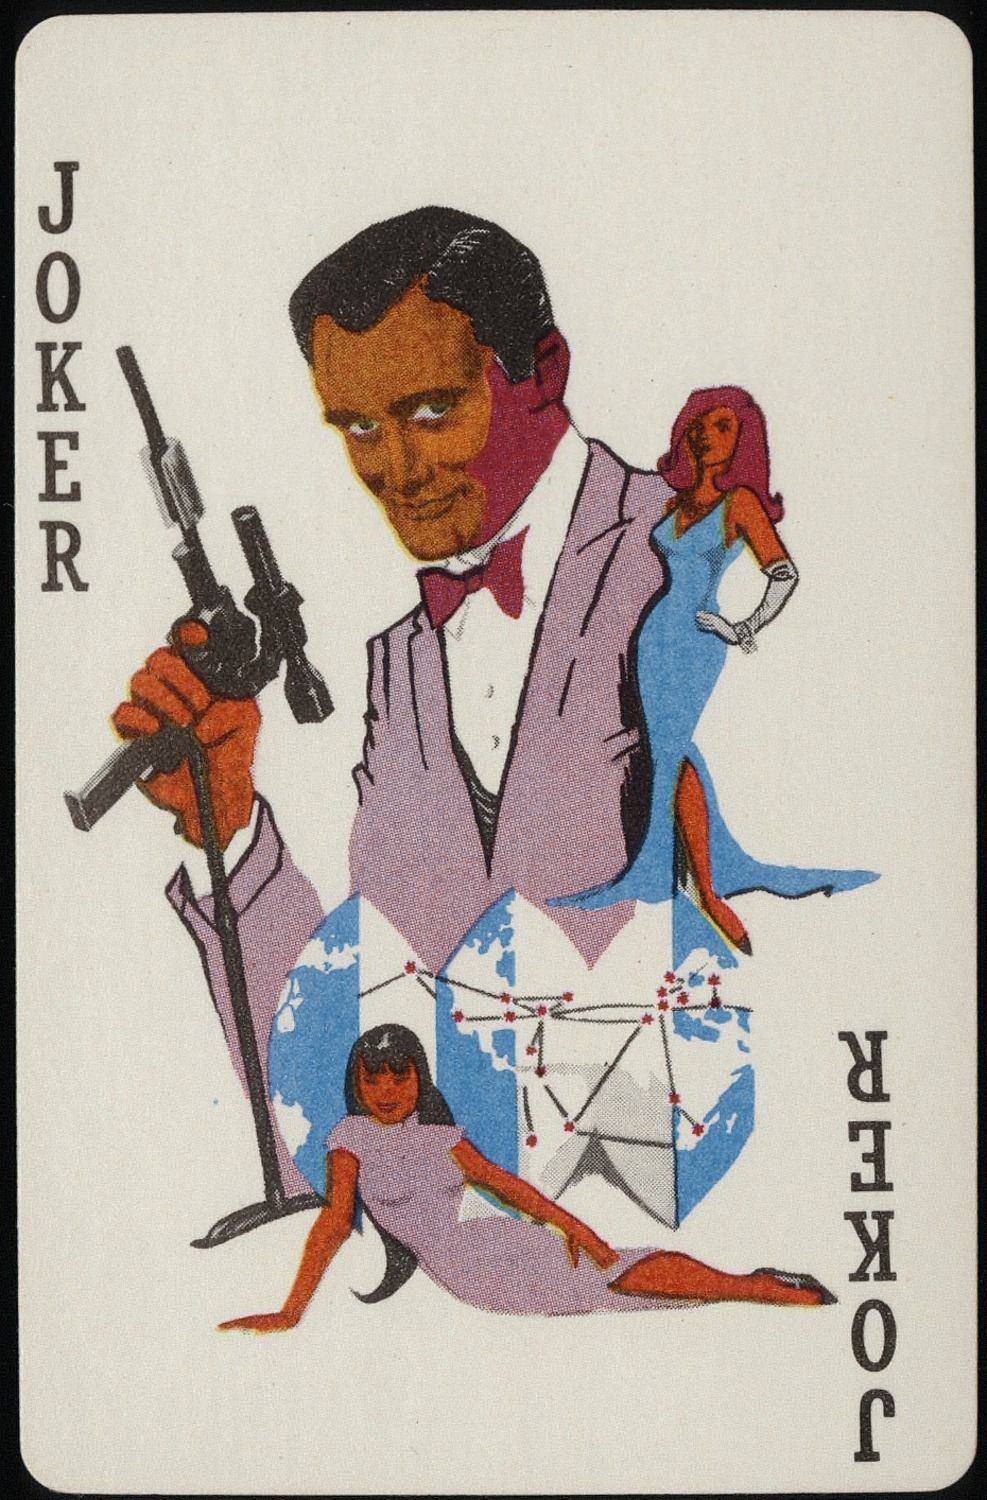 MAN FROM U.N.C.L.E. PLAYING CARDS NO.490, USA 1965